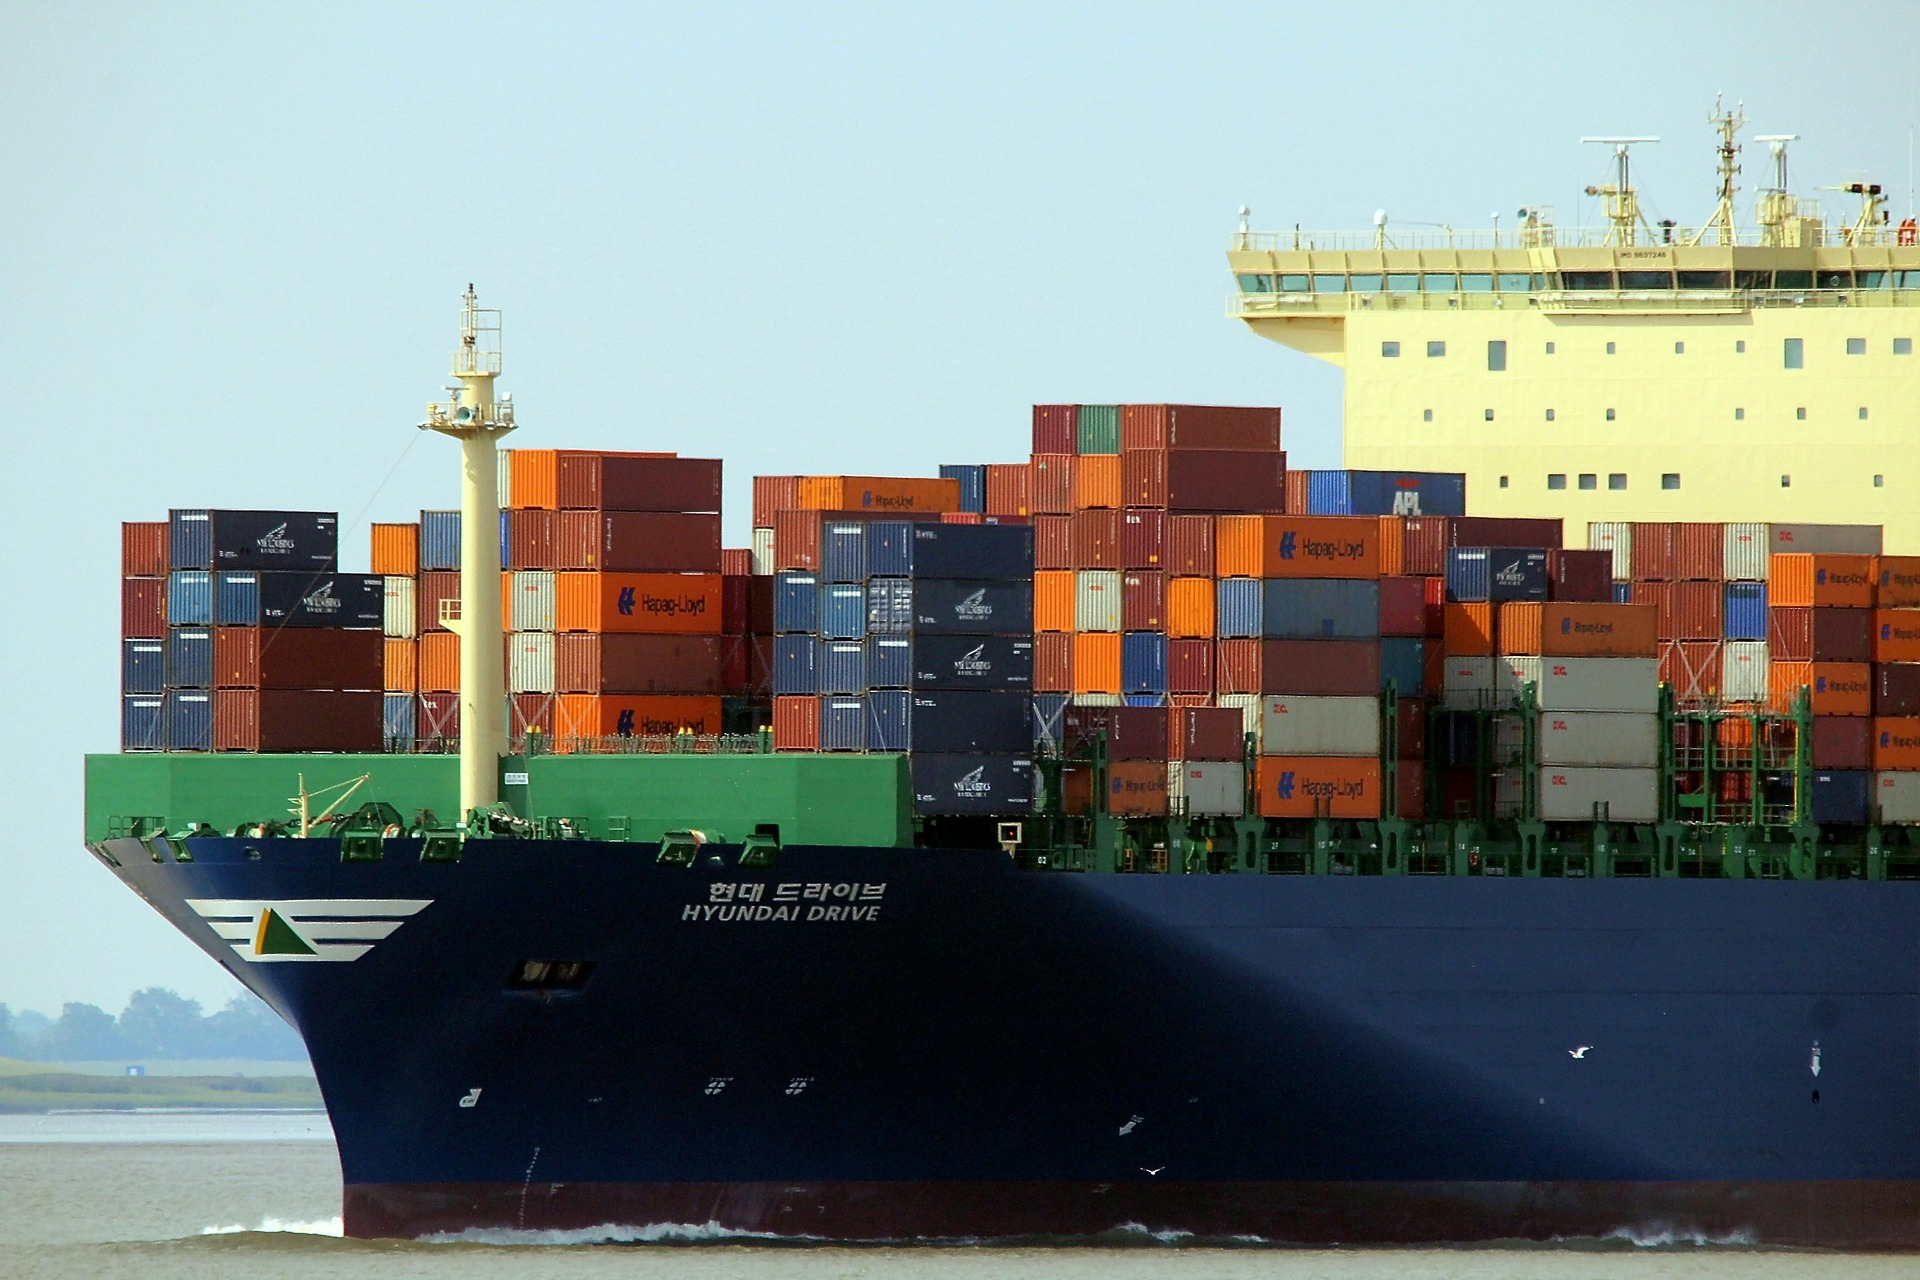 Biofuels will pave the way for greener shipping